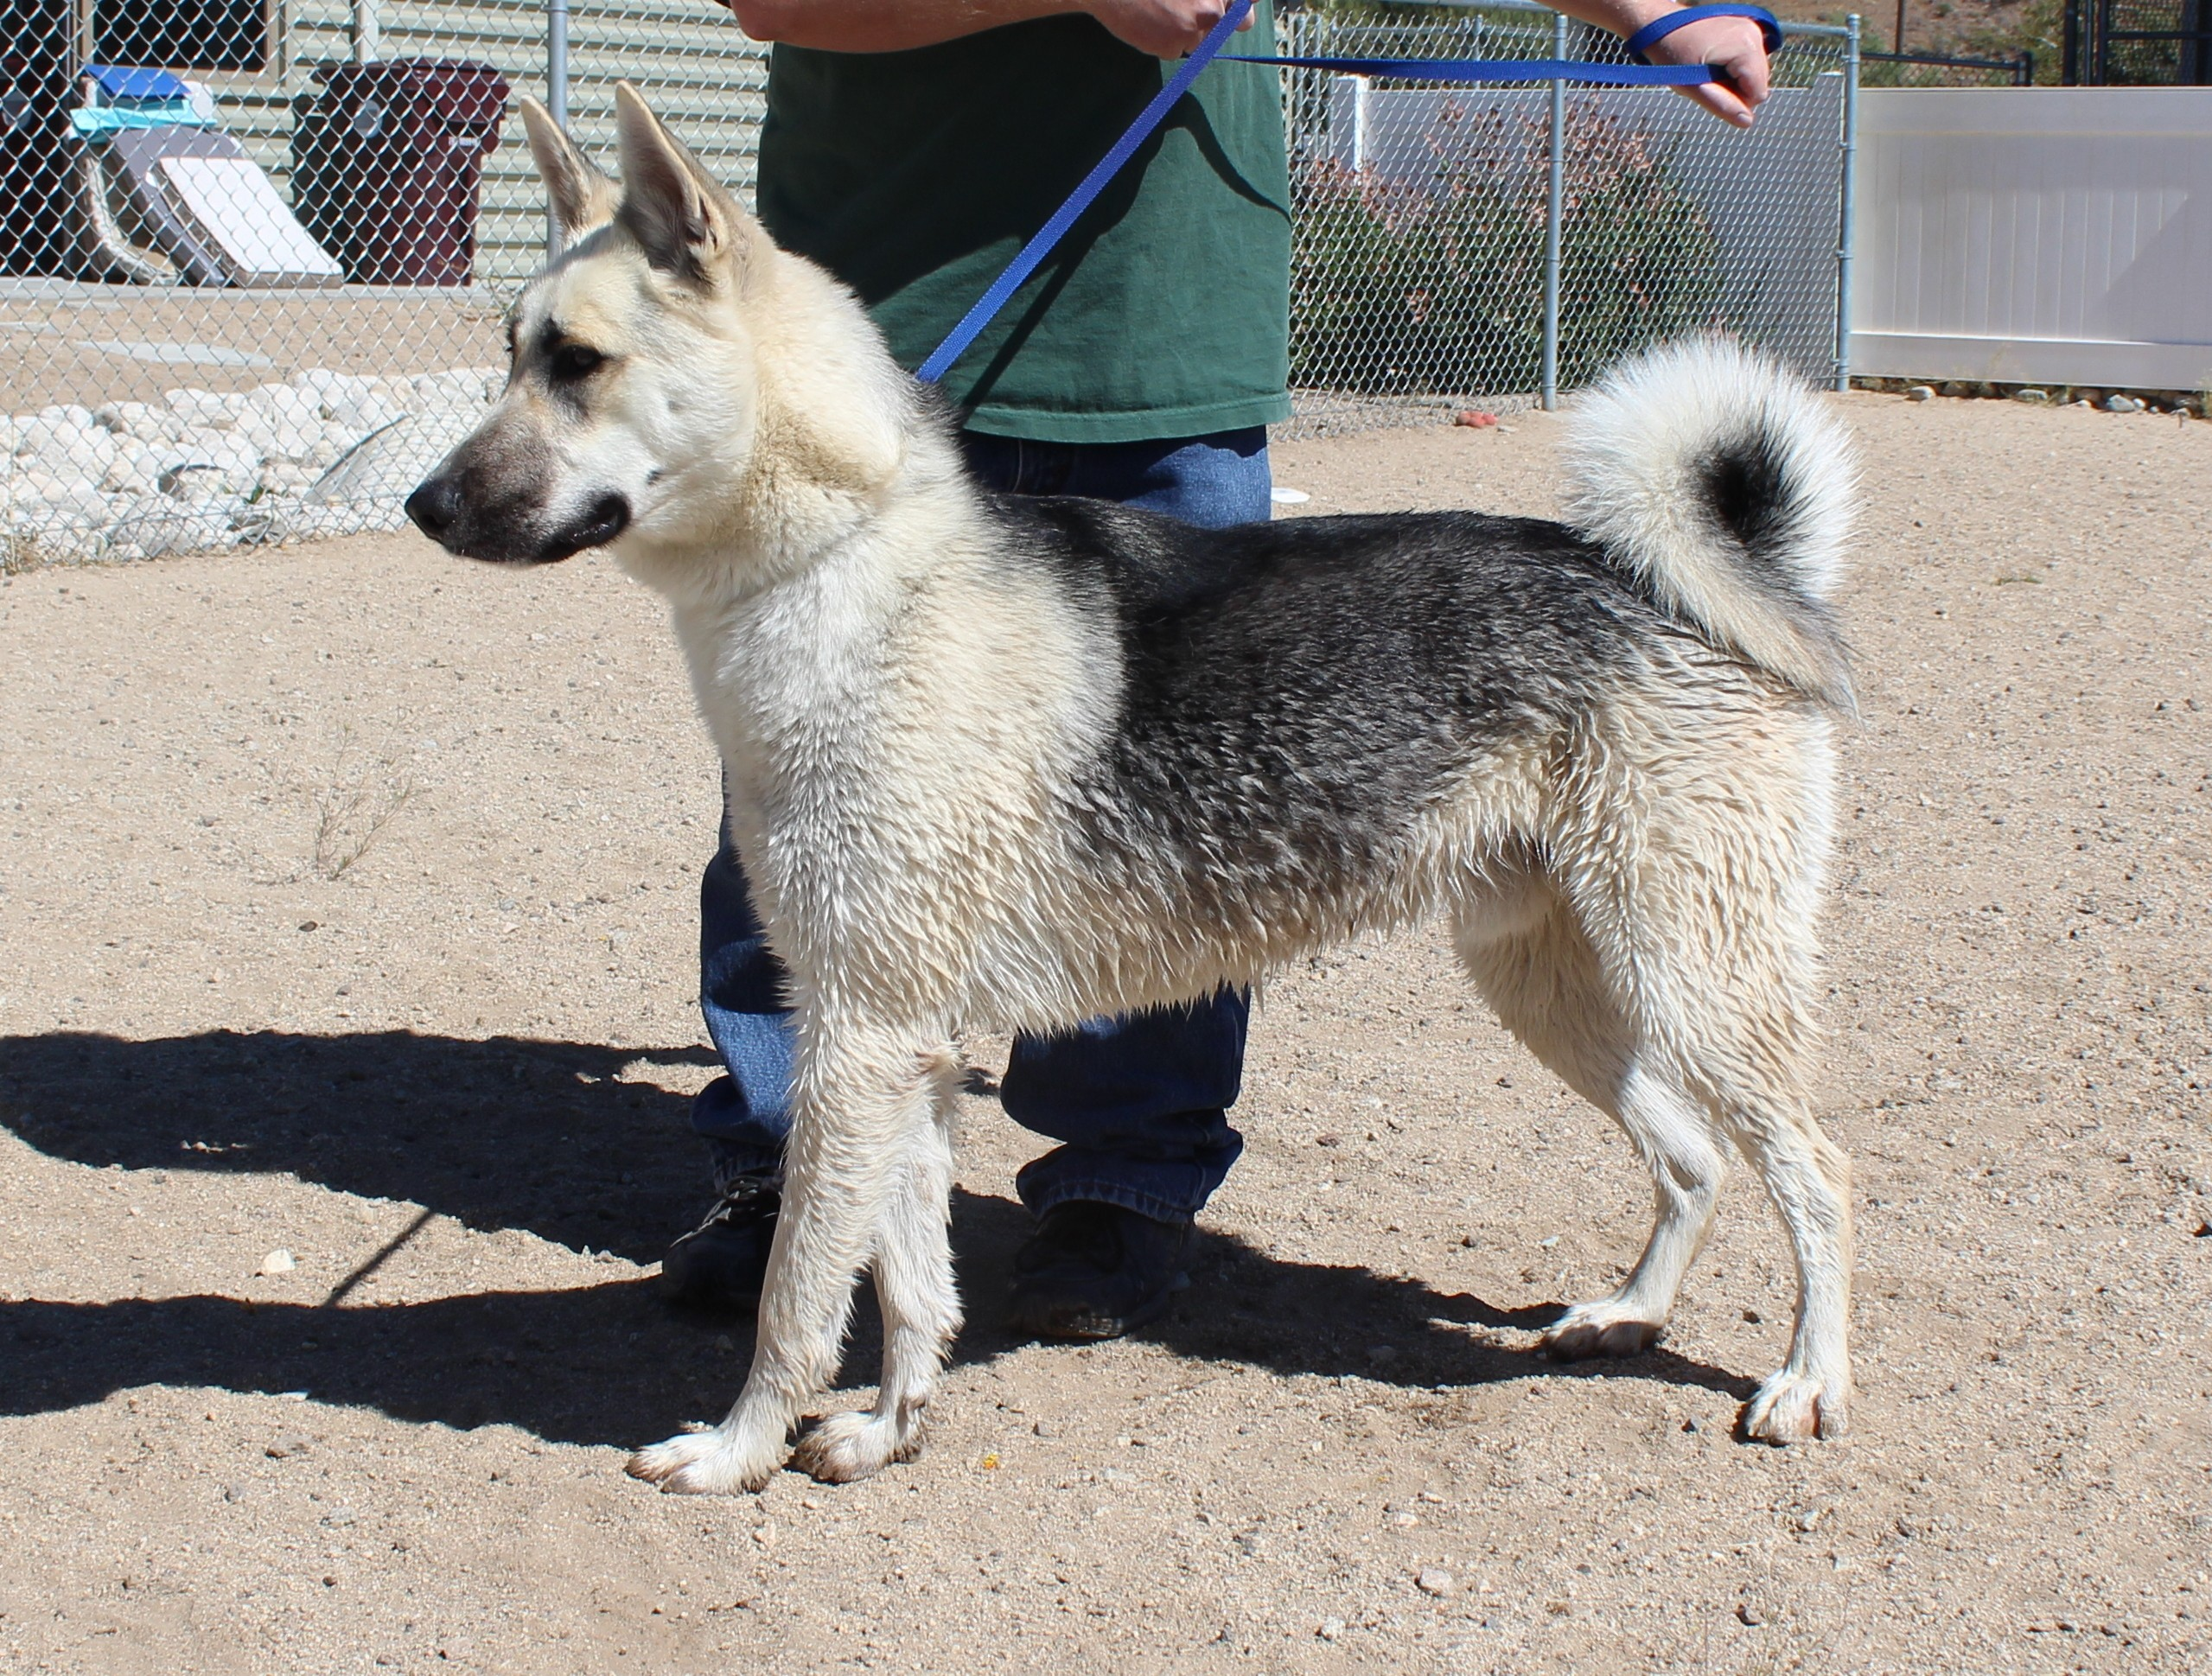 Husky puppies for sale yucca valley - Yucca Valley Ca Shepherd Unknown Type Meet Clyde Vanilla Banana A Dog For Adoption